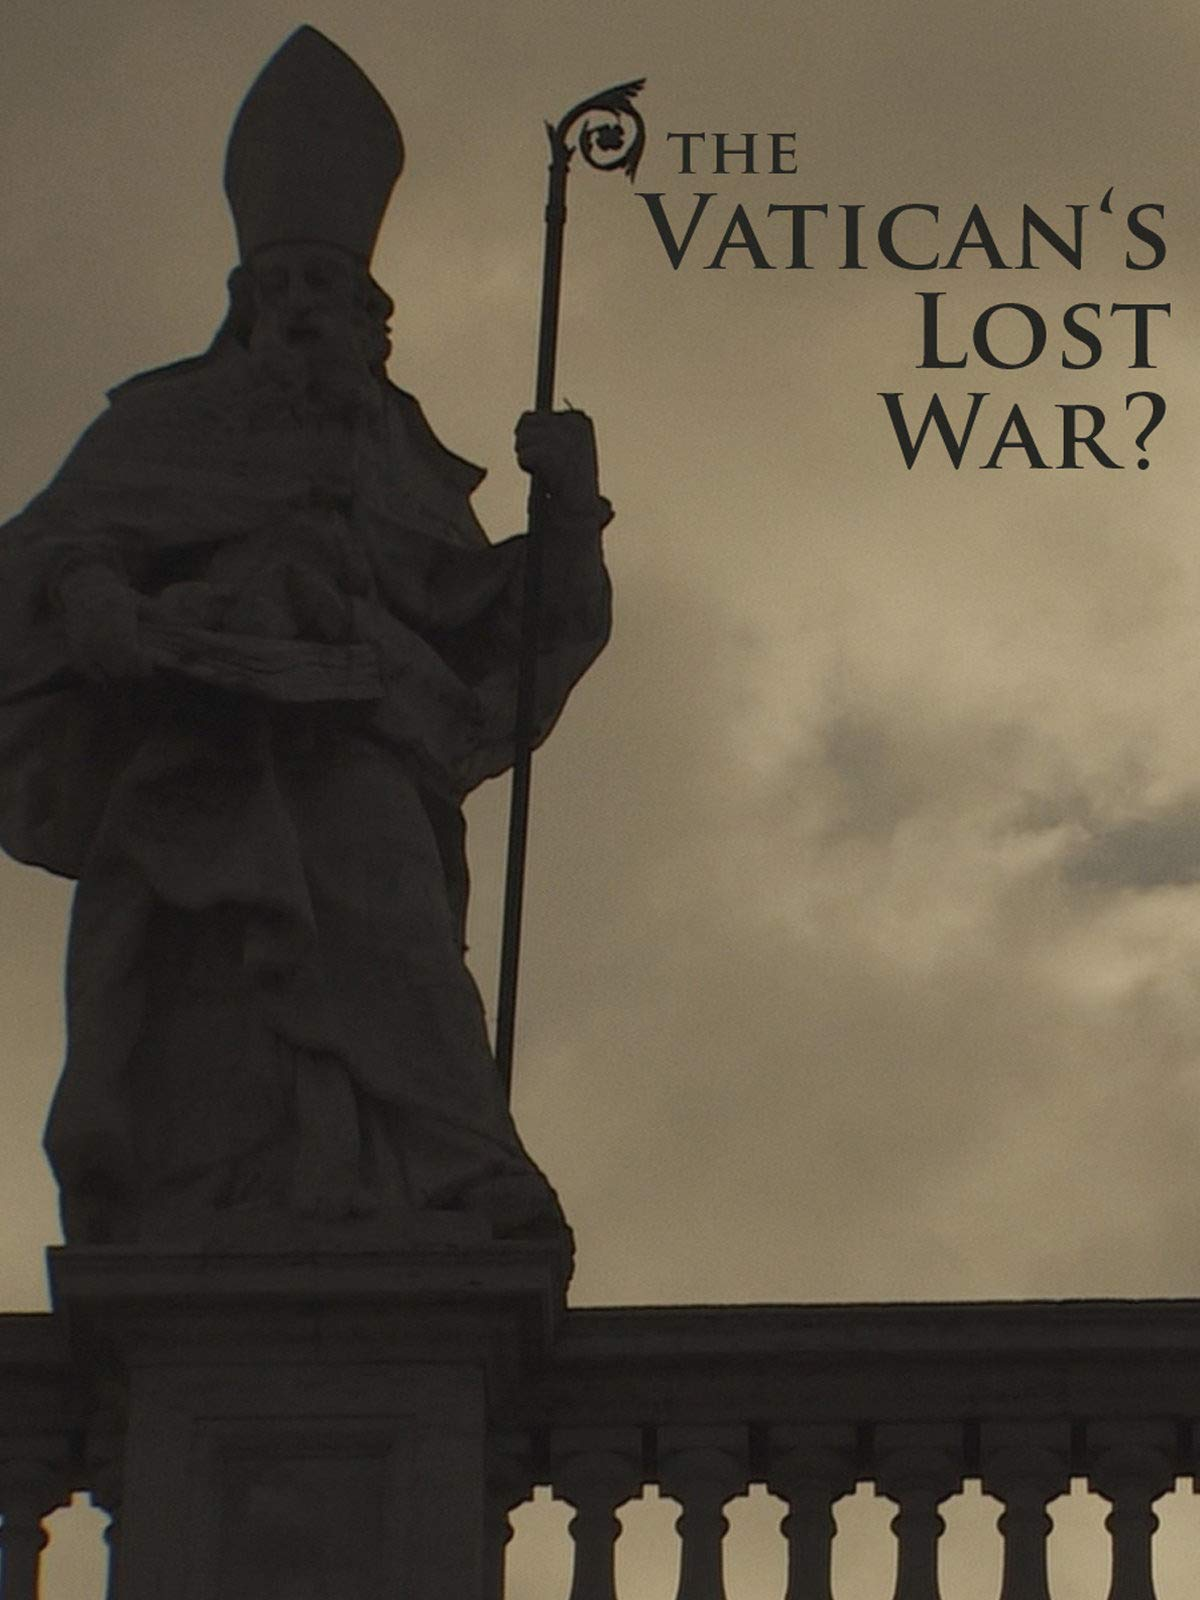 The Vatican's Lost War (English Subtitled)